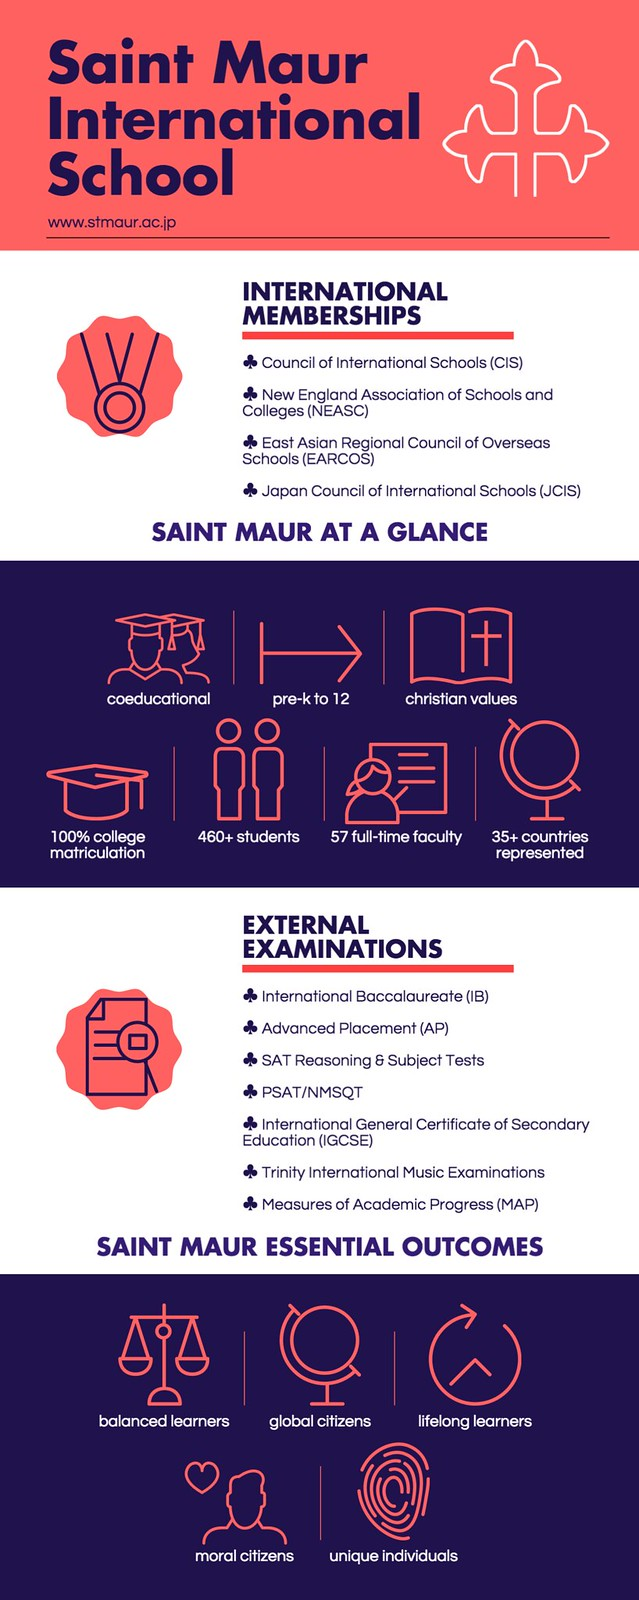 saint-maur-international-school